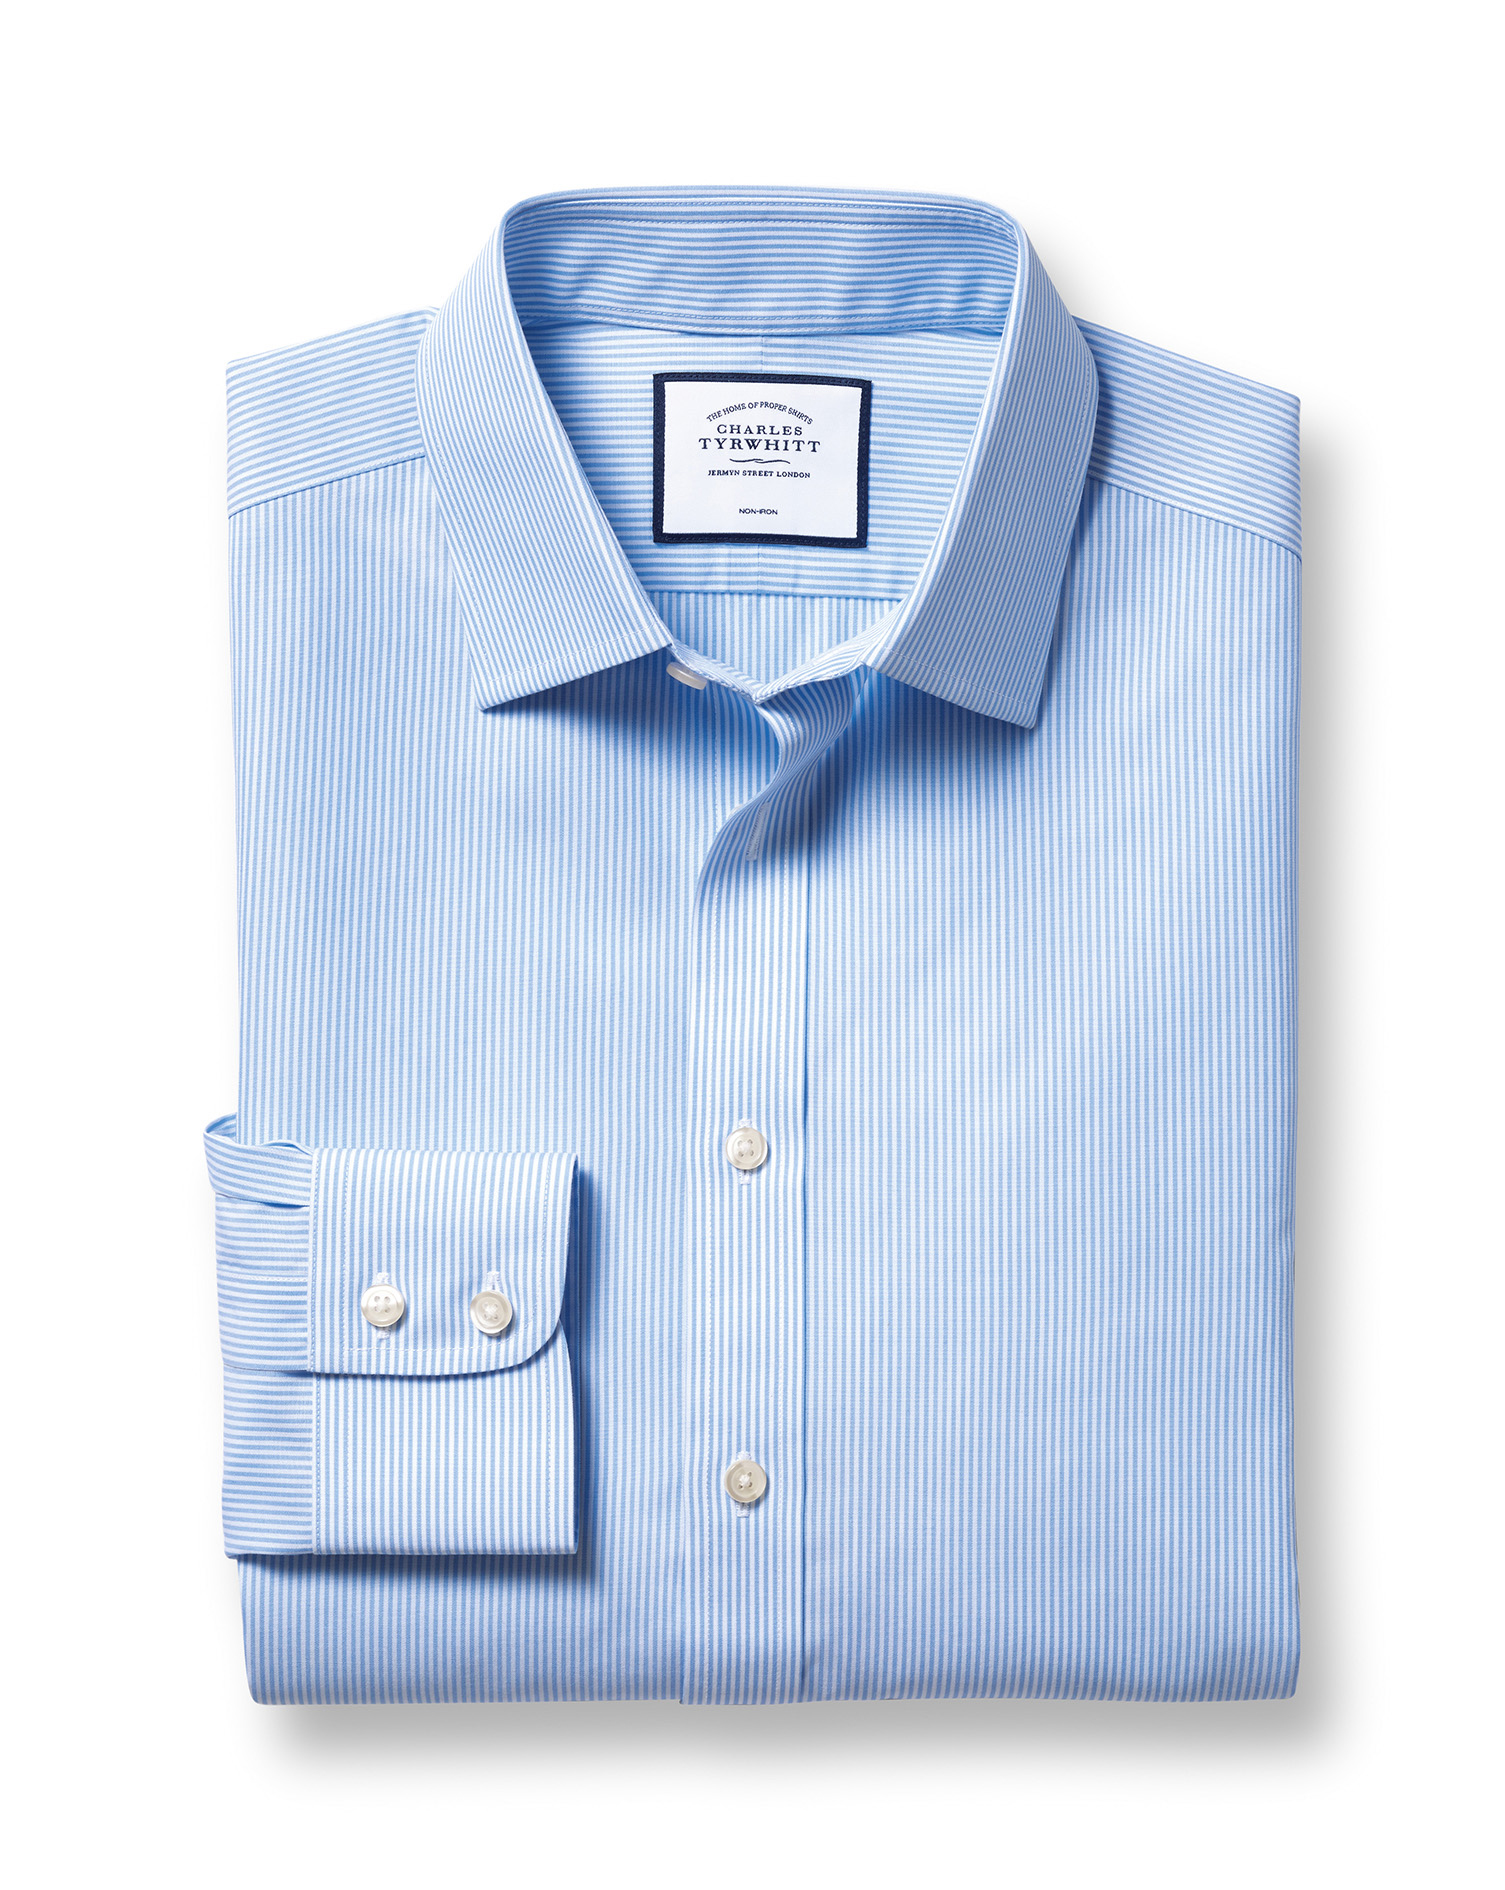 Classic Fit Non-Iron Bengal Stripe Sky Blue Cotton Formal Shirt Single Cuff Size 18/37 by Charles Ty